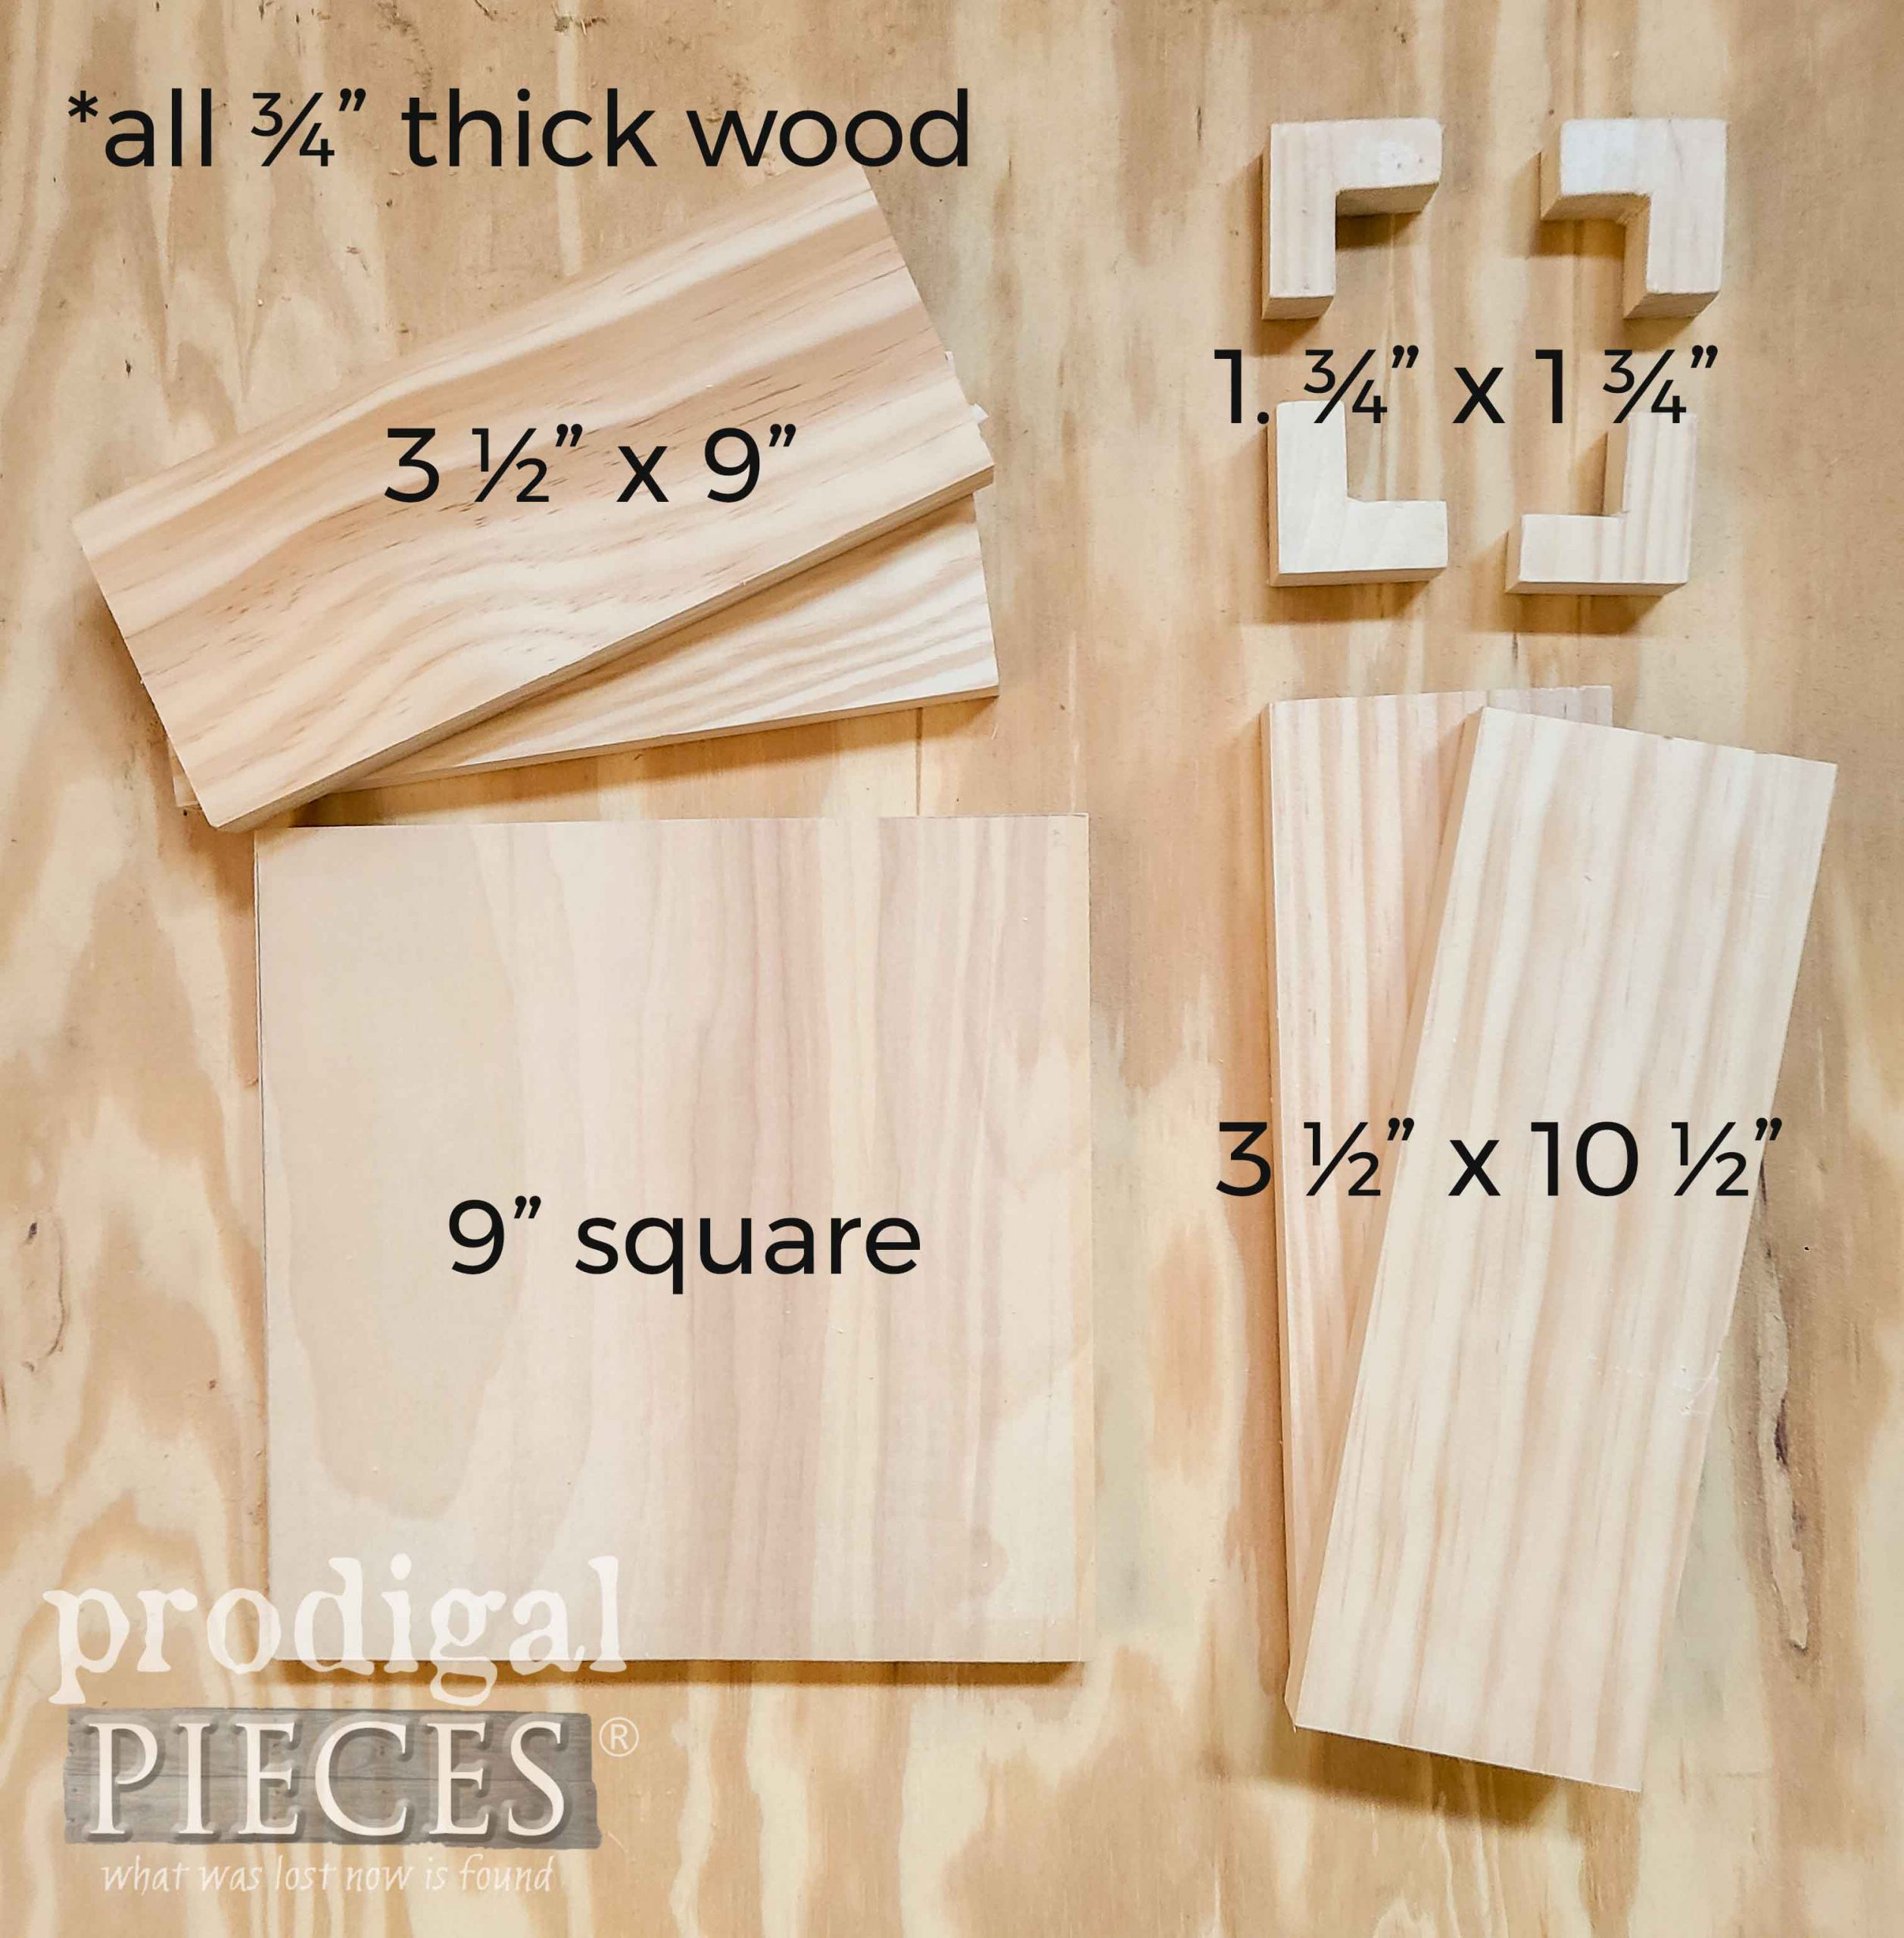 DIY Wooden Gift Box Pieces Diagram by Larissa of Prodigal Pieces | prodigalpieces.com #prodigalpieces #diy #tutorial #handmade #gift #woodworking